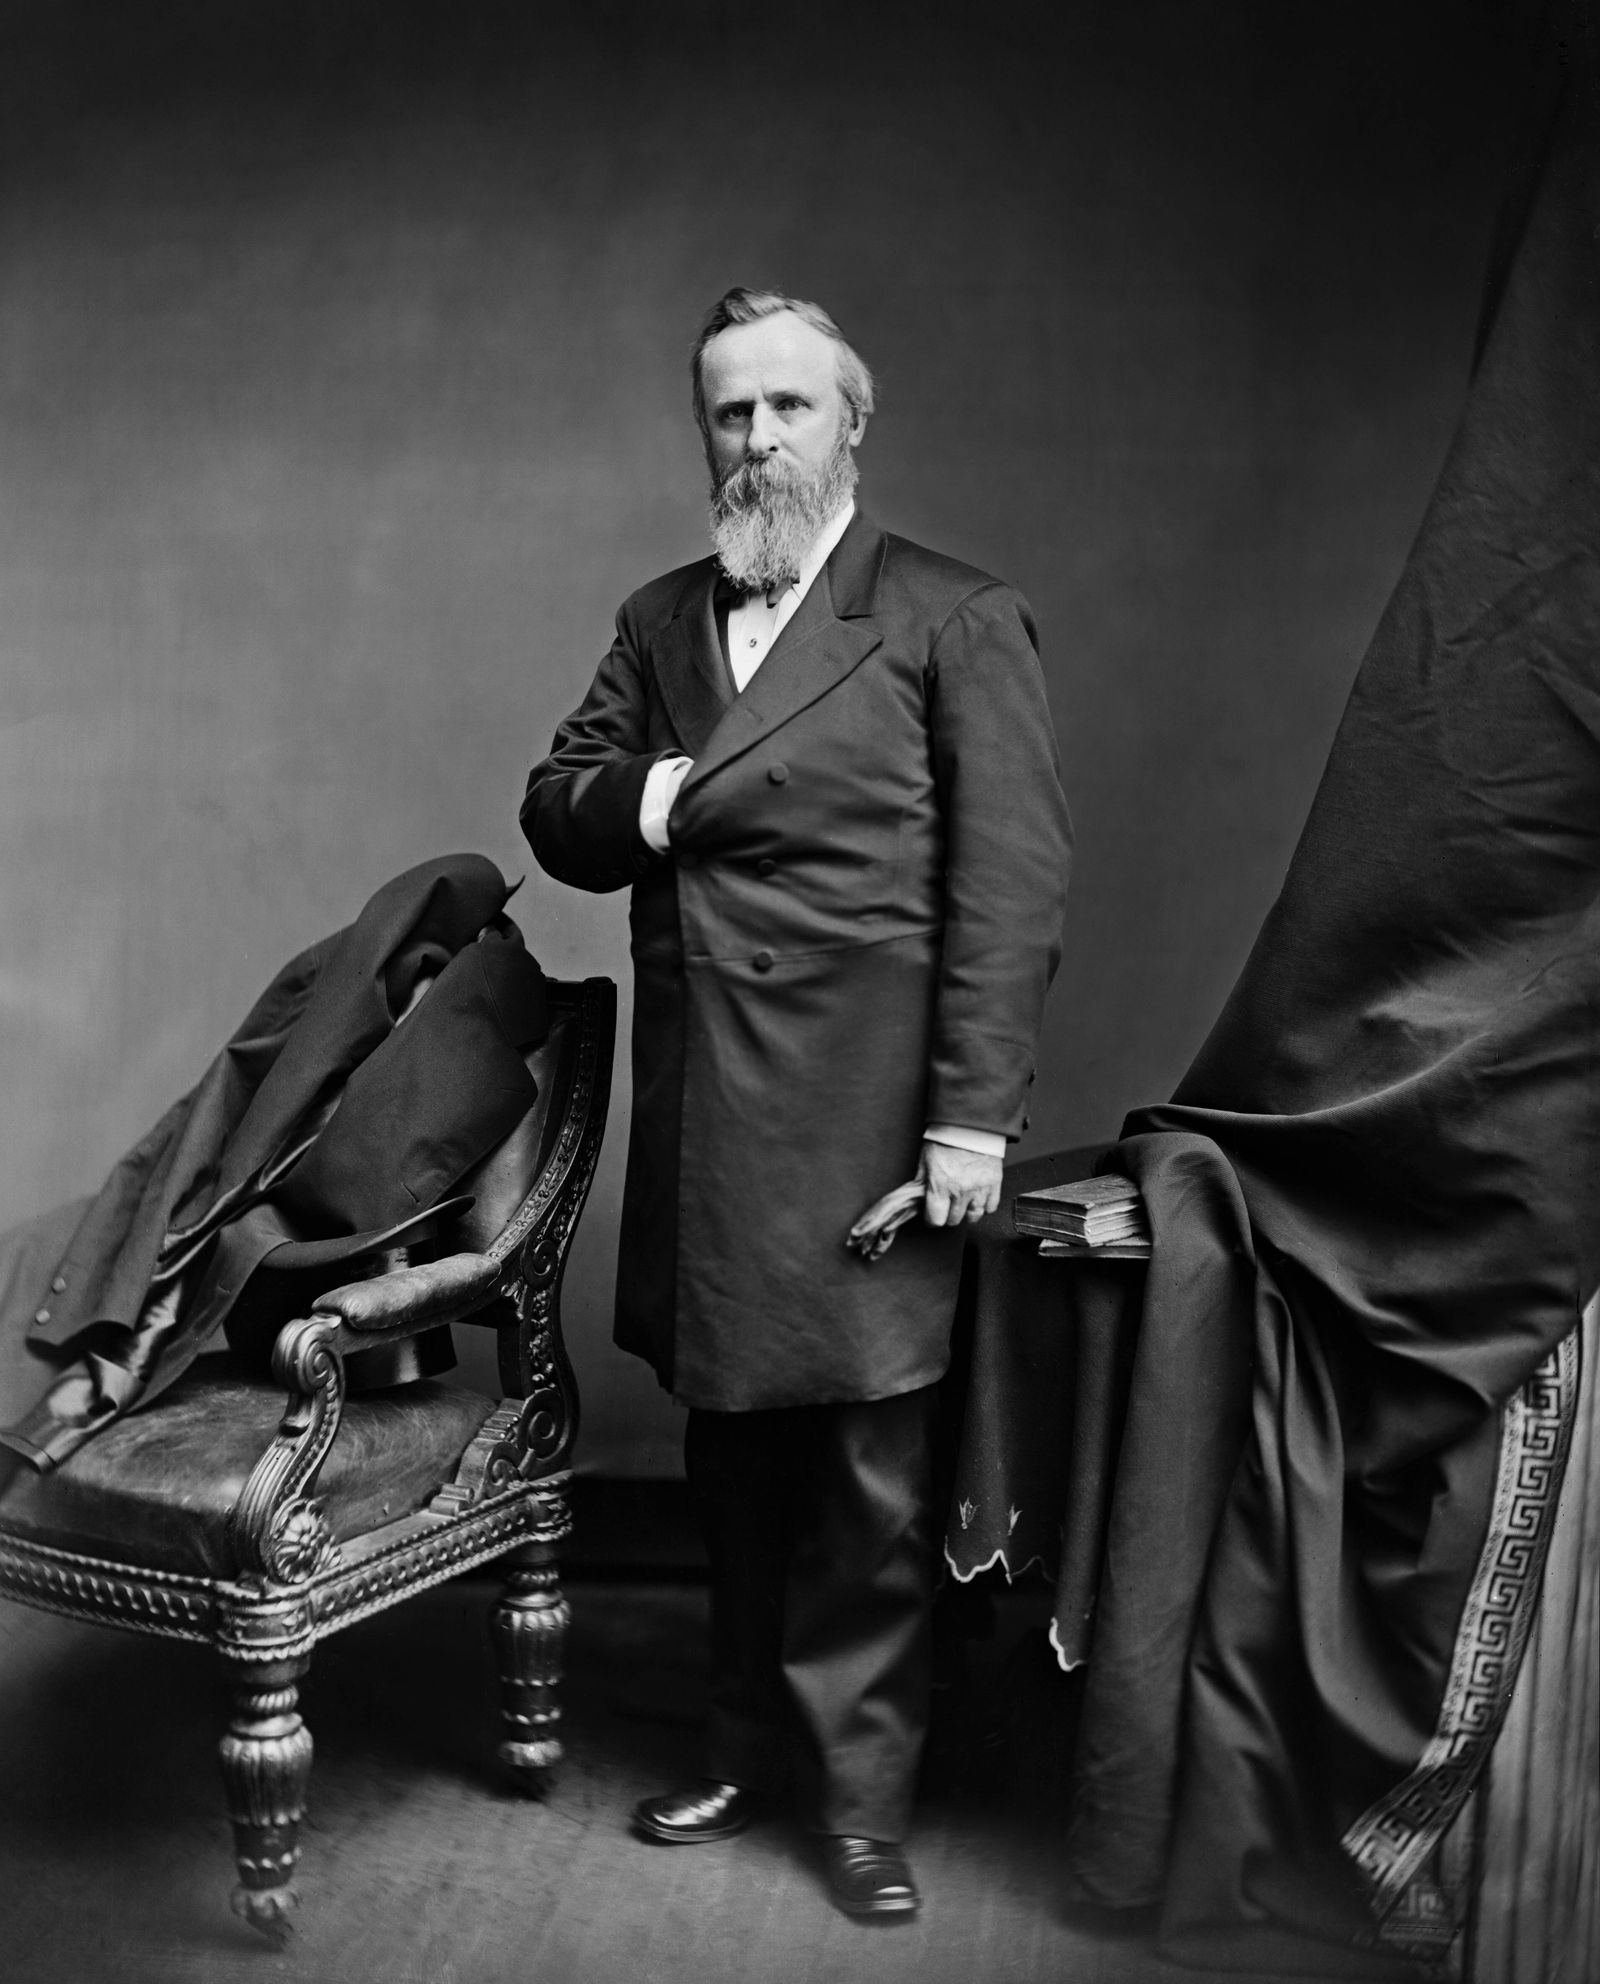 June 1 2019 USA Rutherford B Hayes 1822 93 19th President of the United States 1877 81 Full